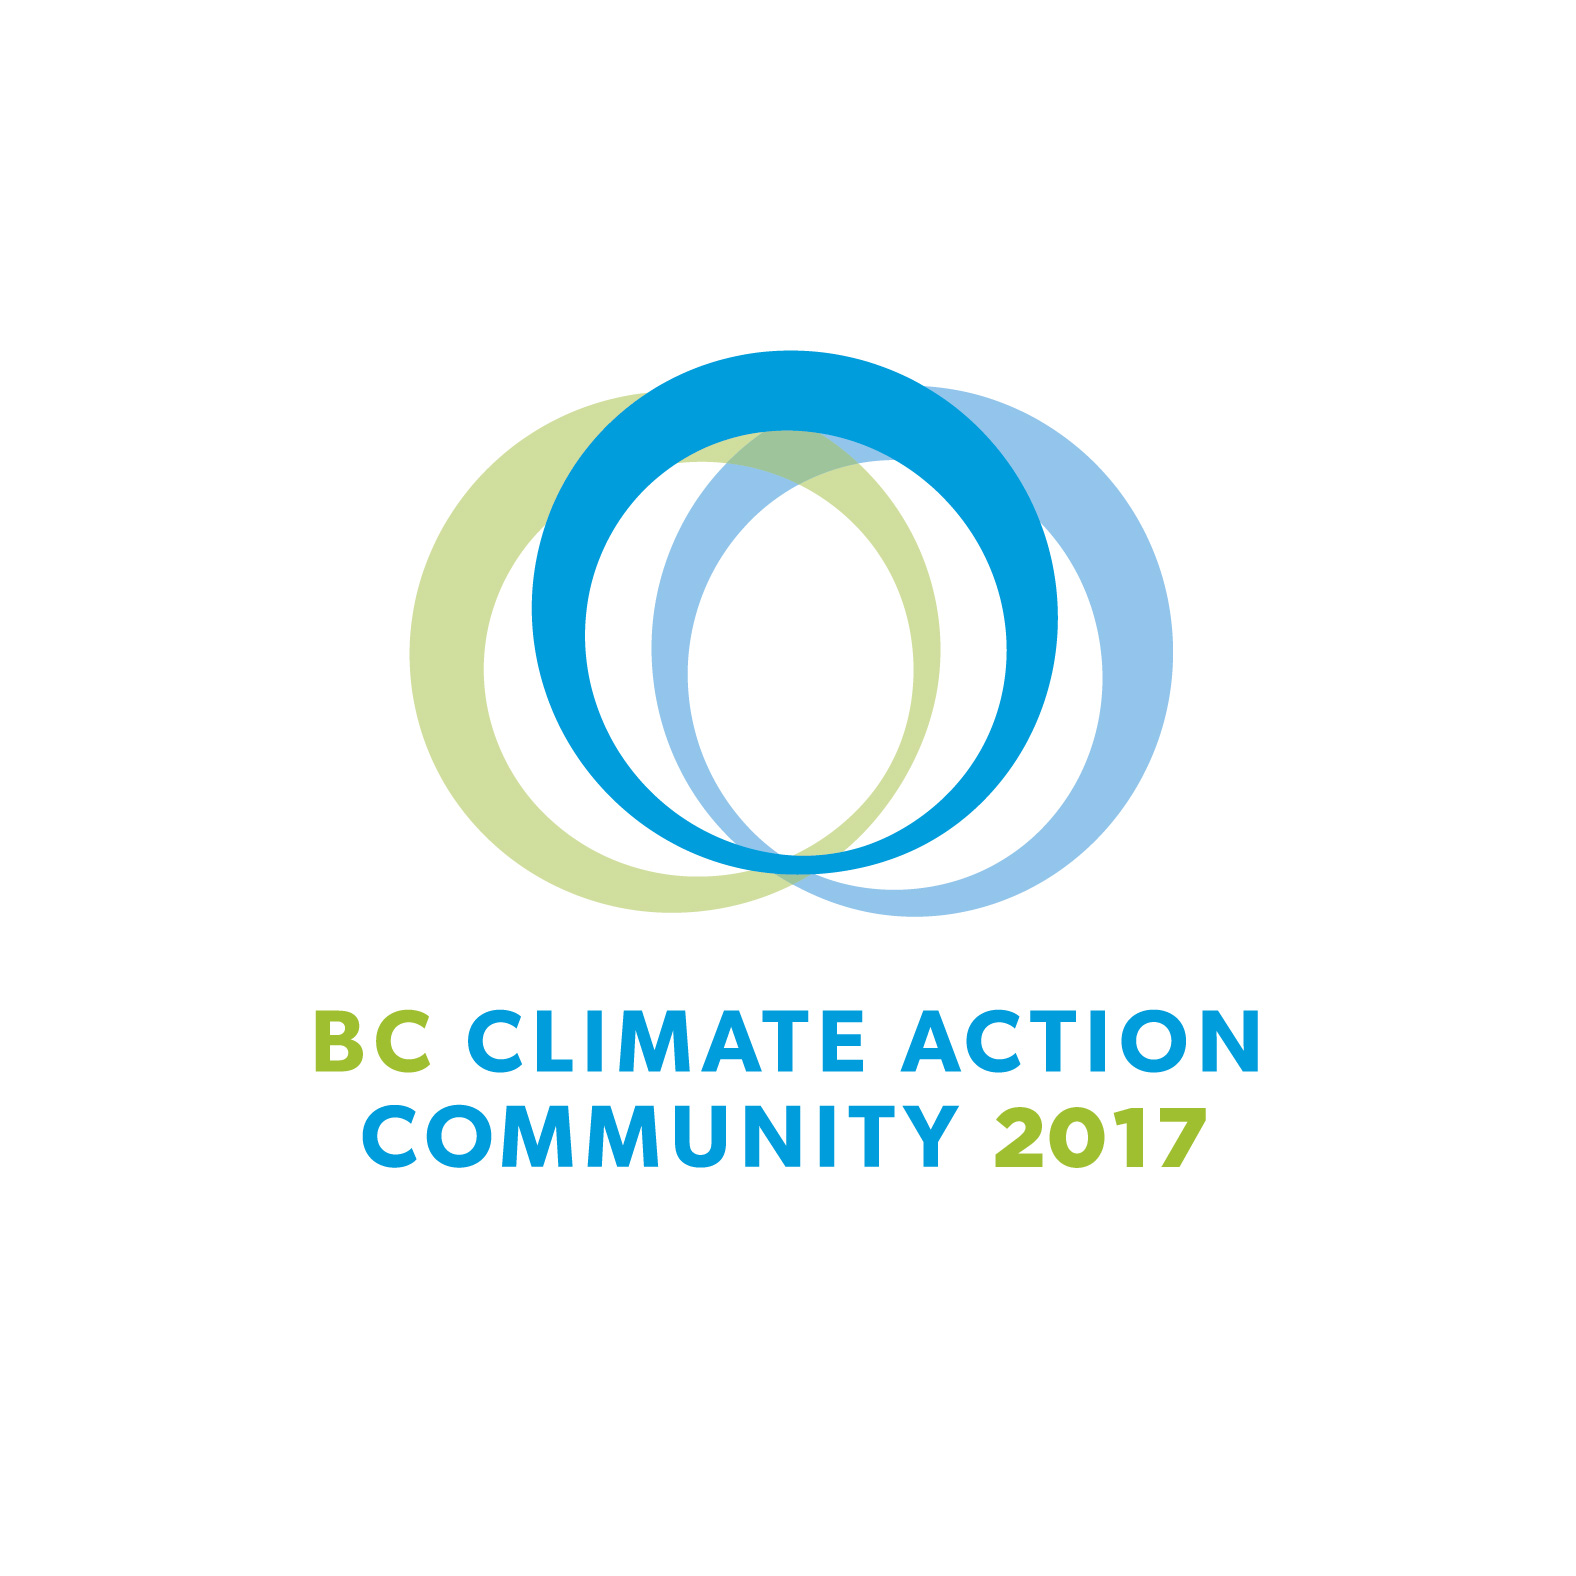 BC Climate Action